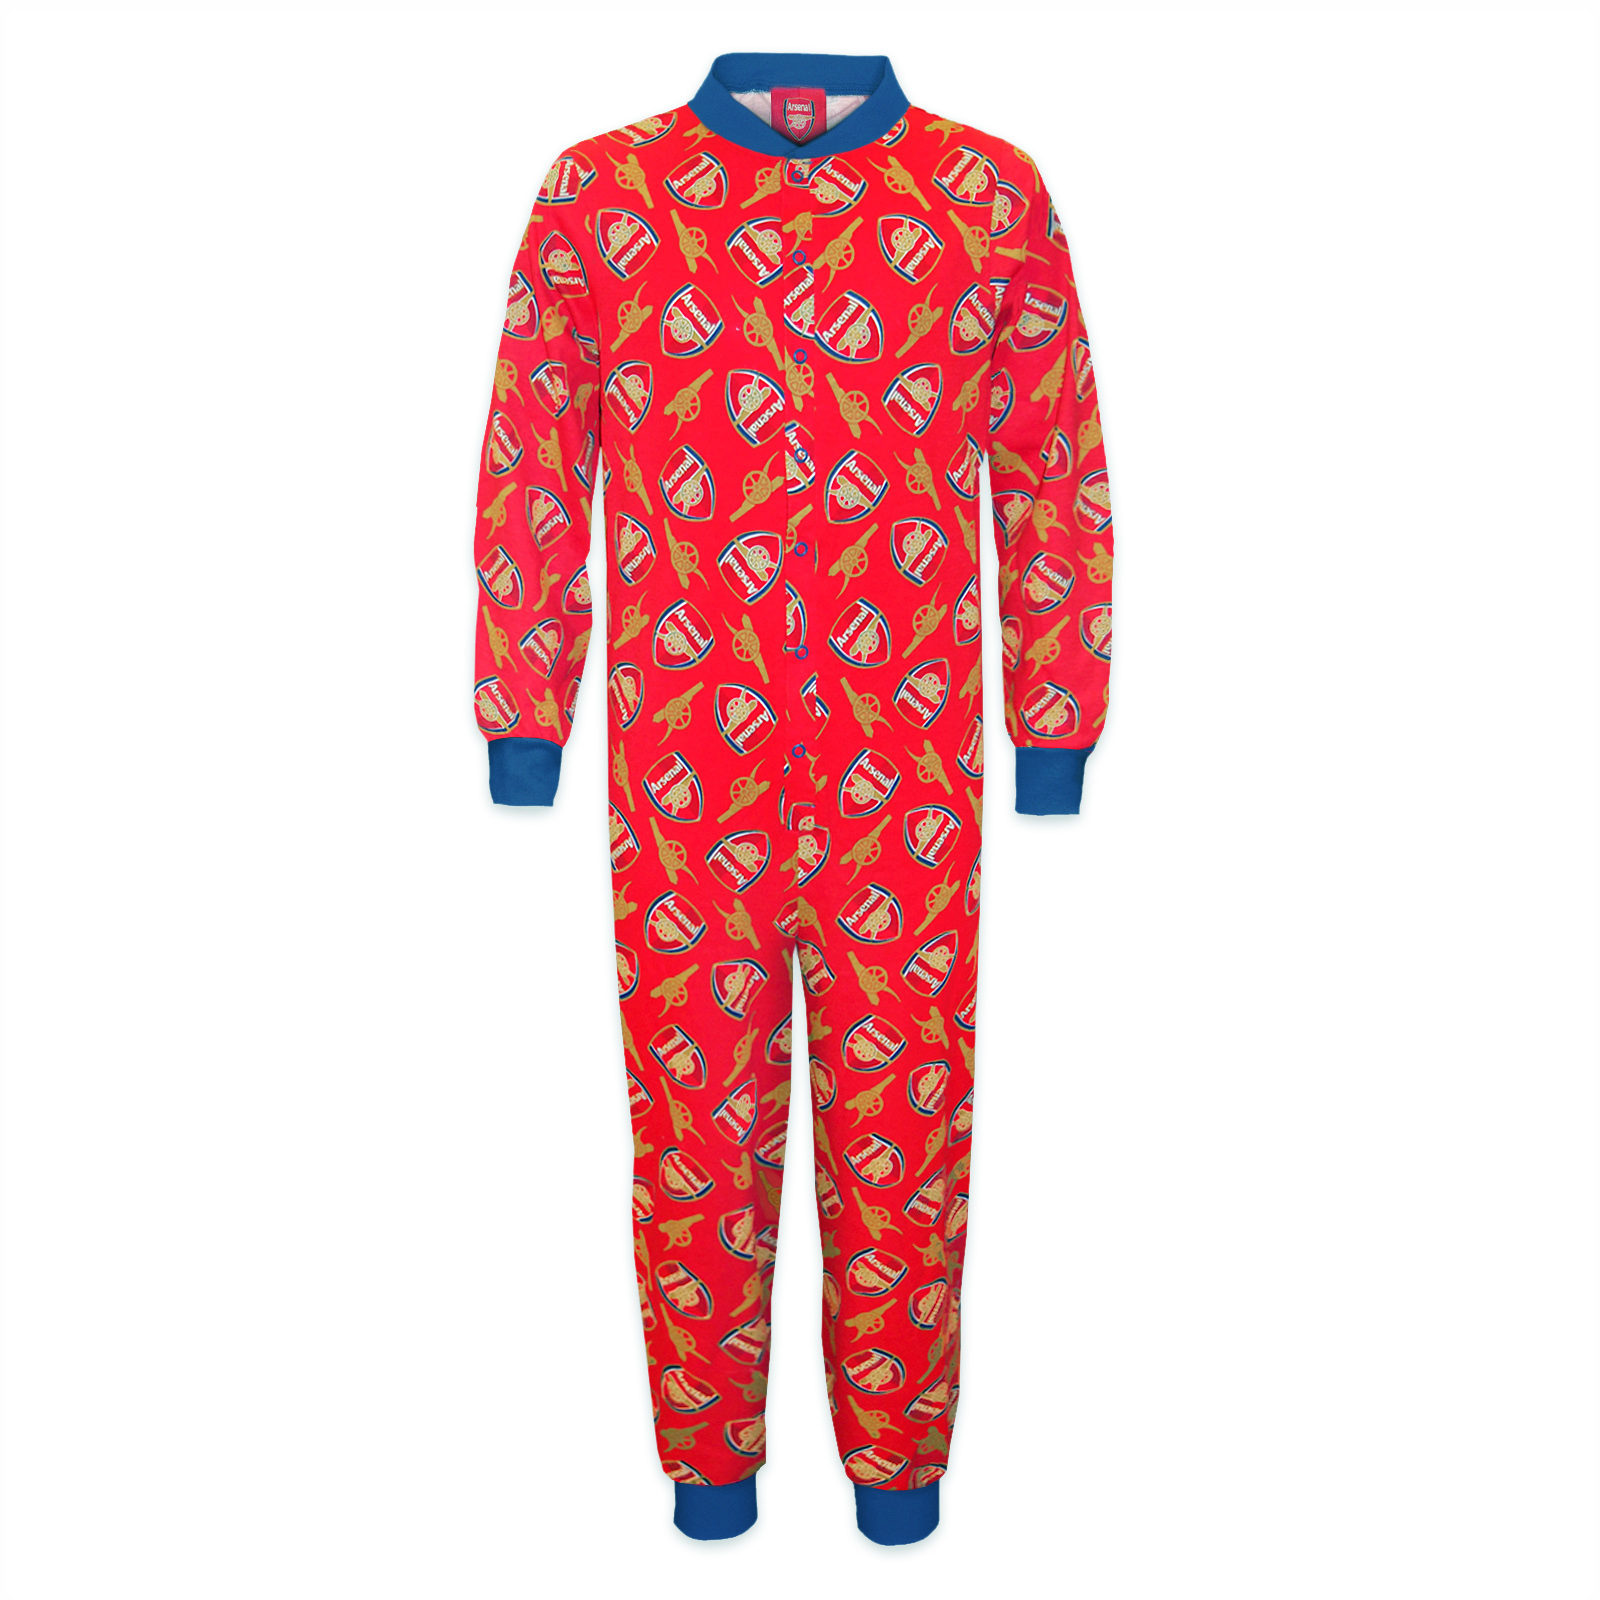 Football pyjamas, read reviews and buy online at George. Shop from our latest range in boys. Your little footie fan will have his best sleep ever in this sof 5/5(1).